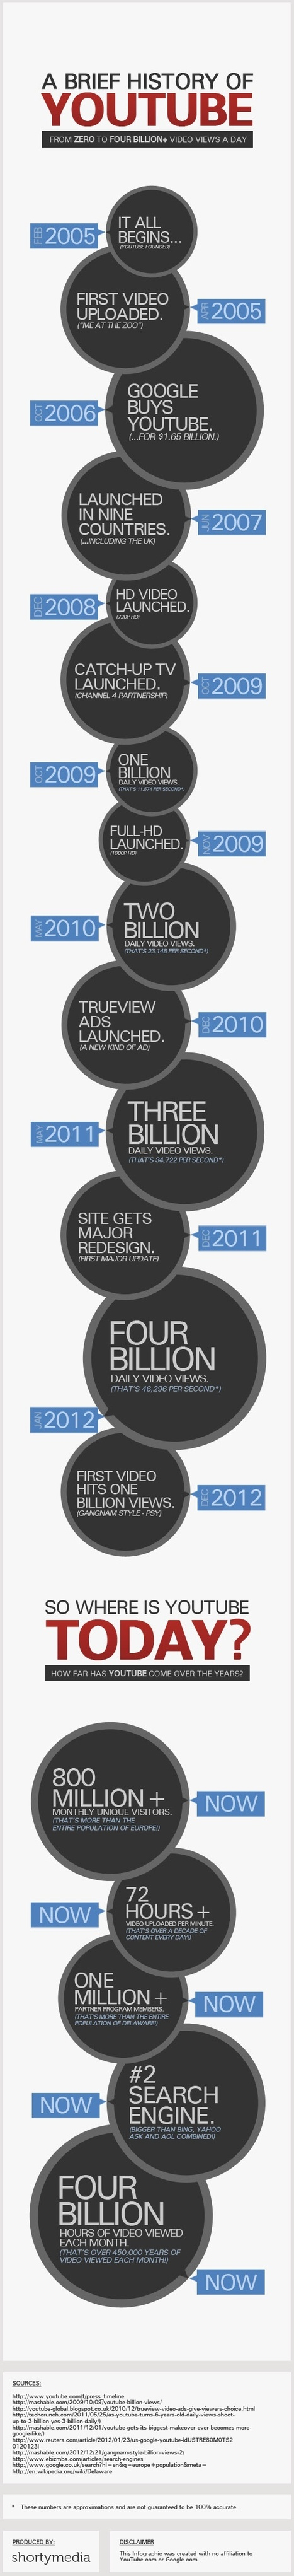 The Facts and Figures on YouTube in 2013 - Infographic | e-Xploration | Scoop.it